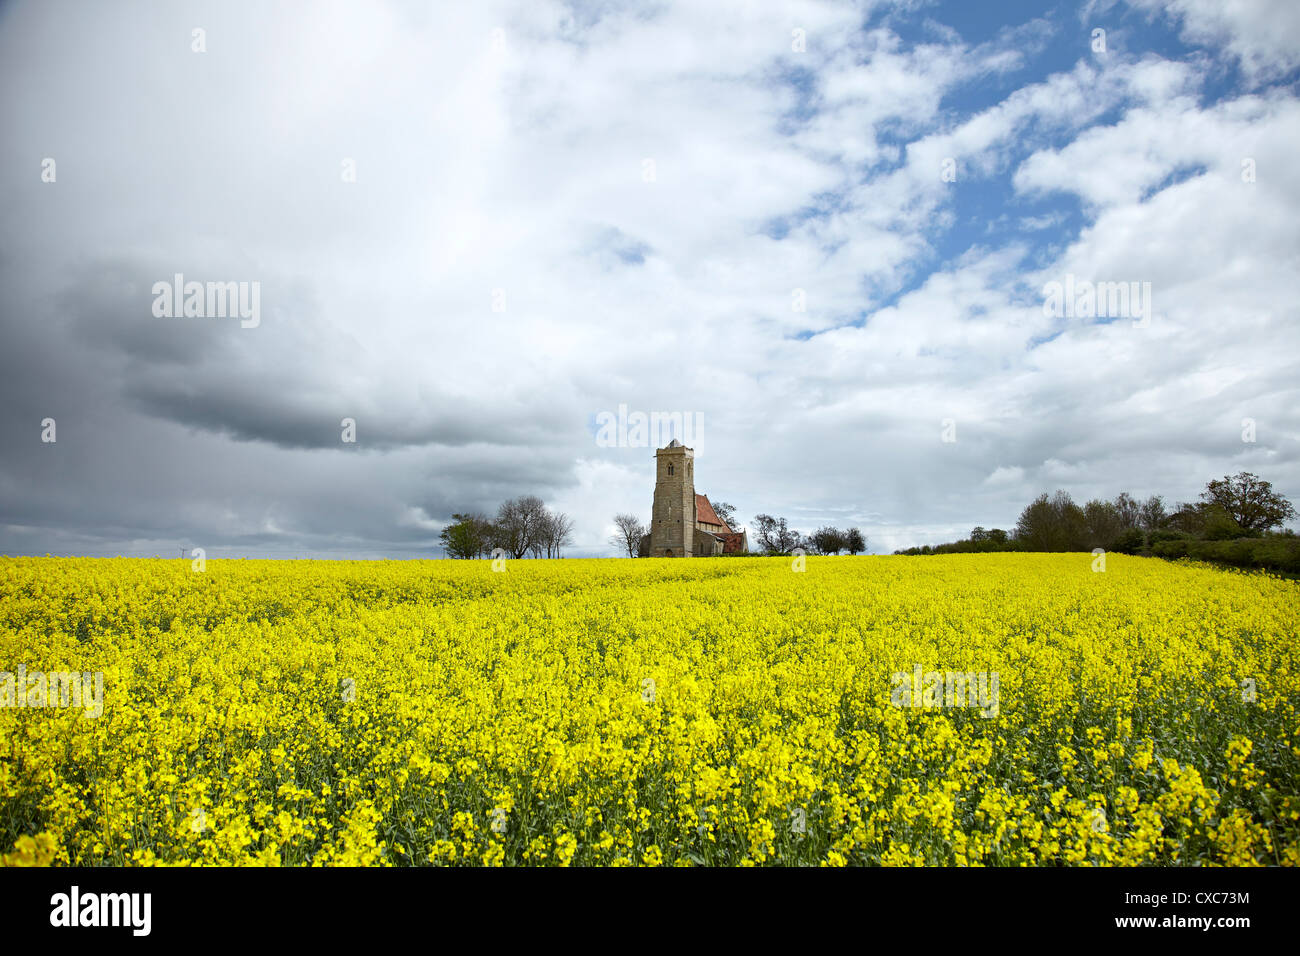 St. Andrew's Church, Wood Walton, Cambridgeshire, England, United Kingdom, Europe - Stock Image